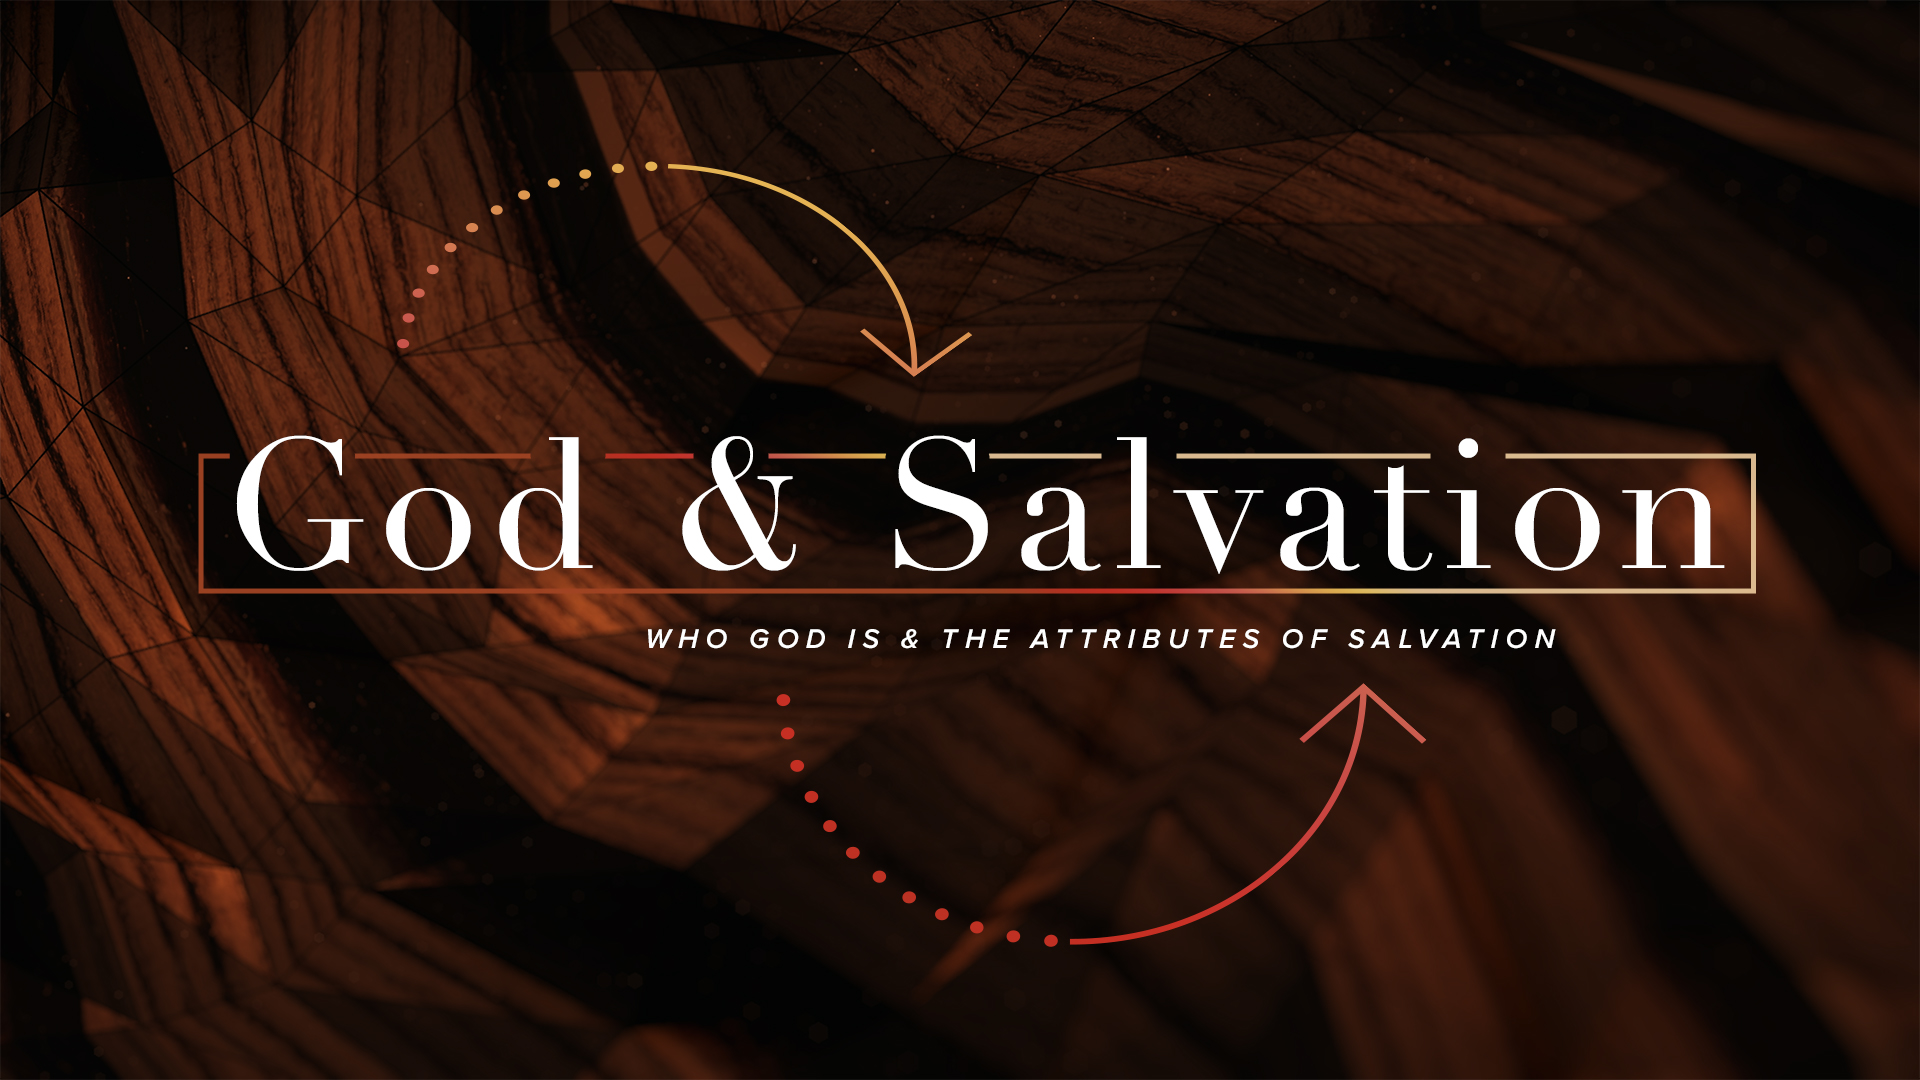 God & Salvation: Sanctification